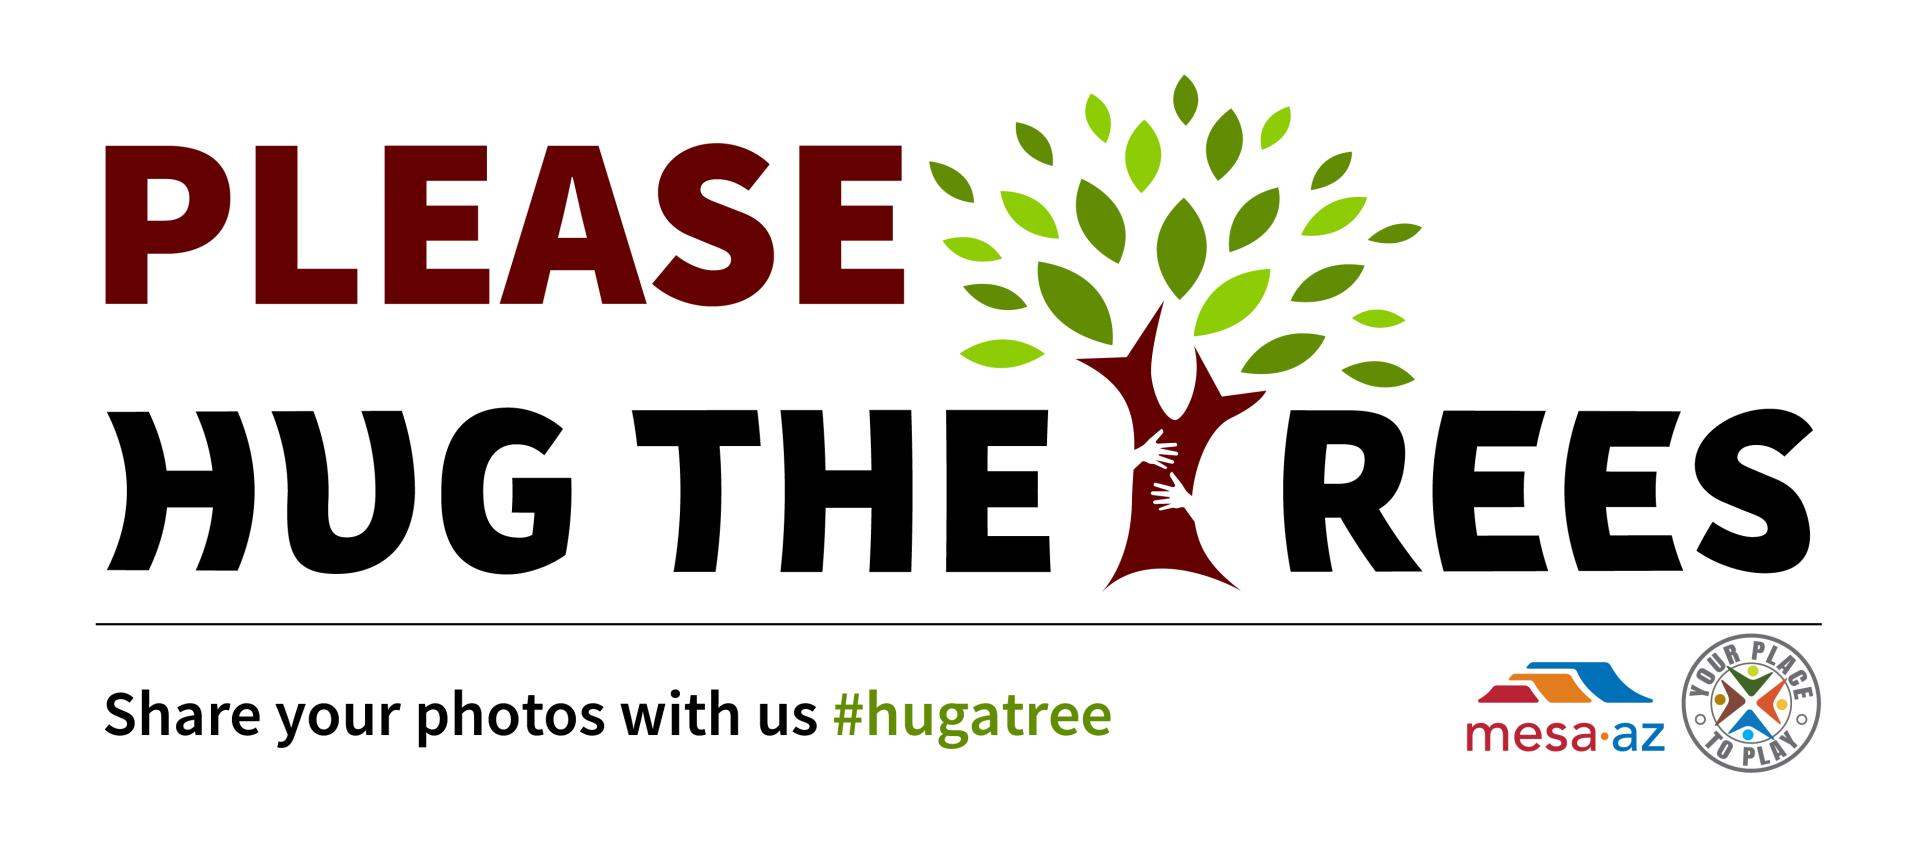 Hug The Trees Hug The Trees 2019 City of Mesa Parks and Recreation